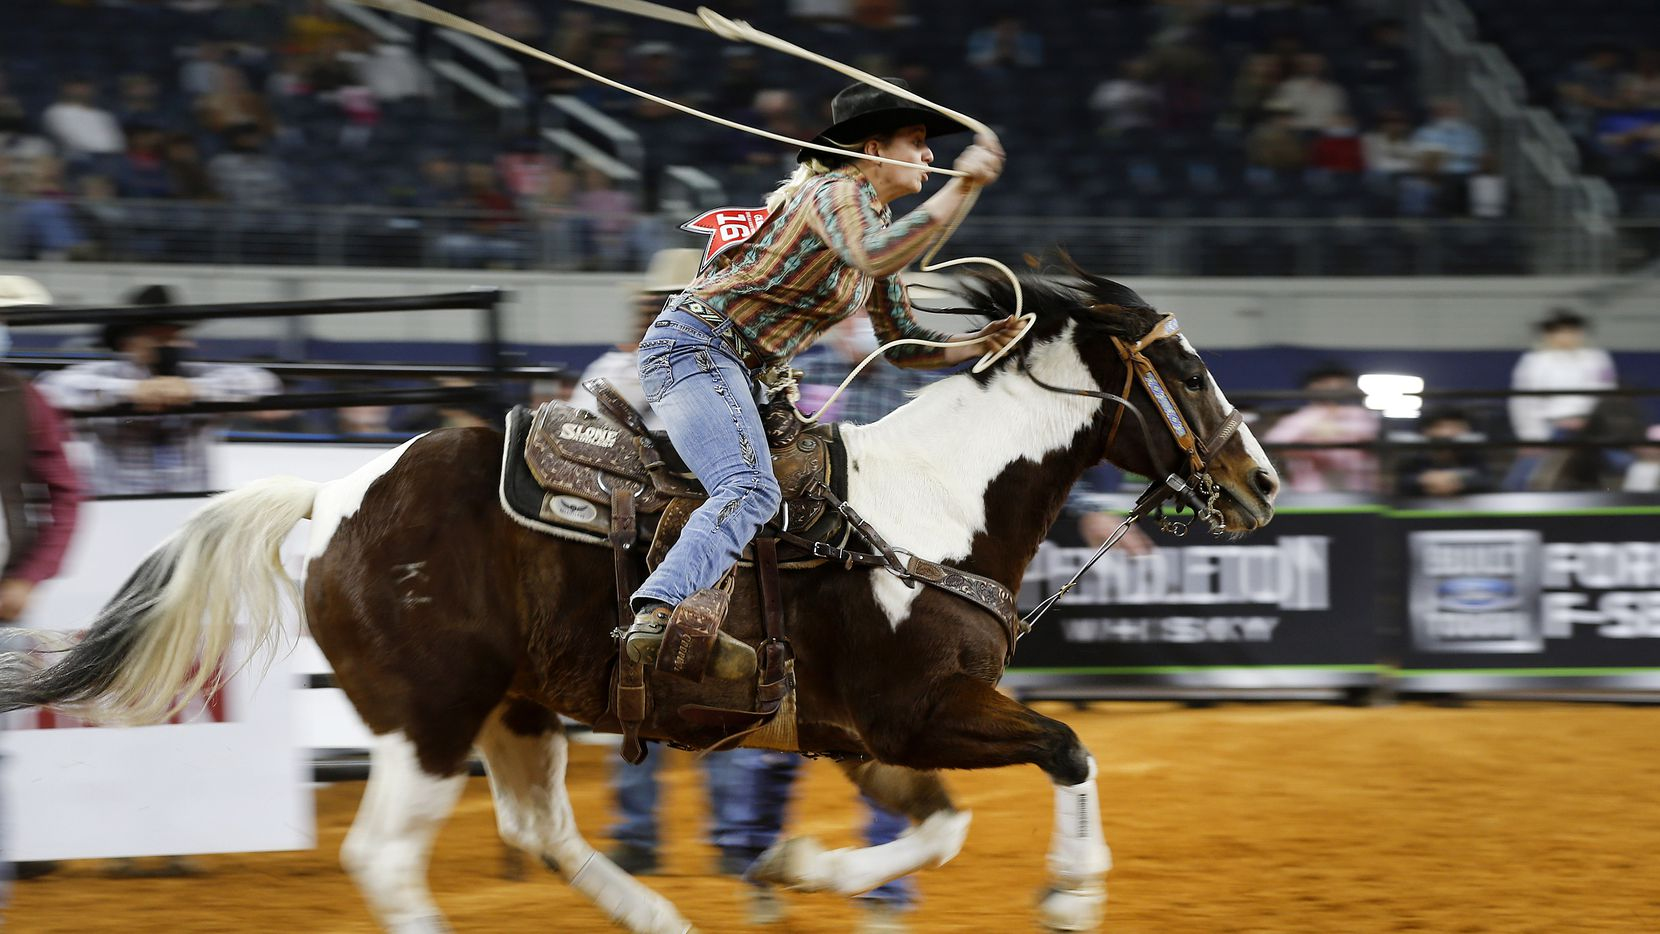 Sawyer Gilbert races from the gate before roping a calf in the breakaway roping final of the inaugural Women's Rodeo World Championship at AT&T Stadium in Arlington, Sunday, November 15, 2020. Less than a month later, the city will host another rodeo event.